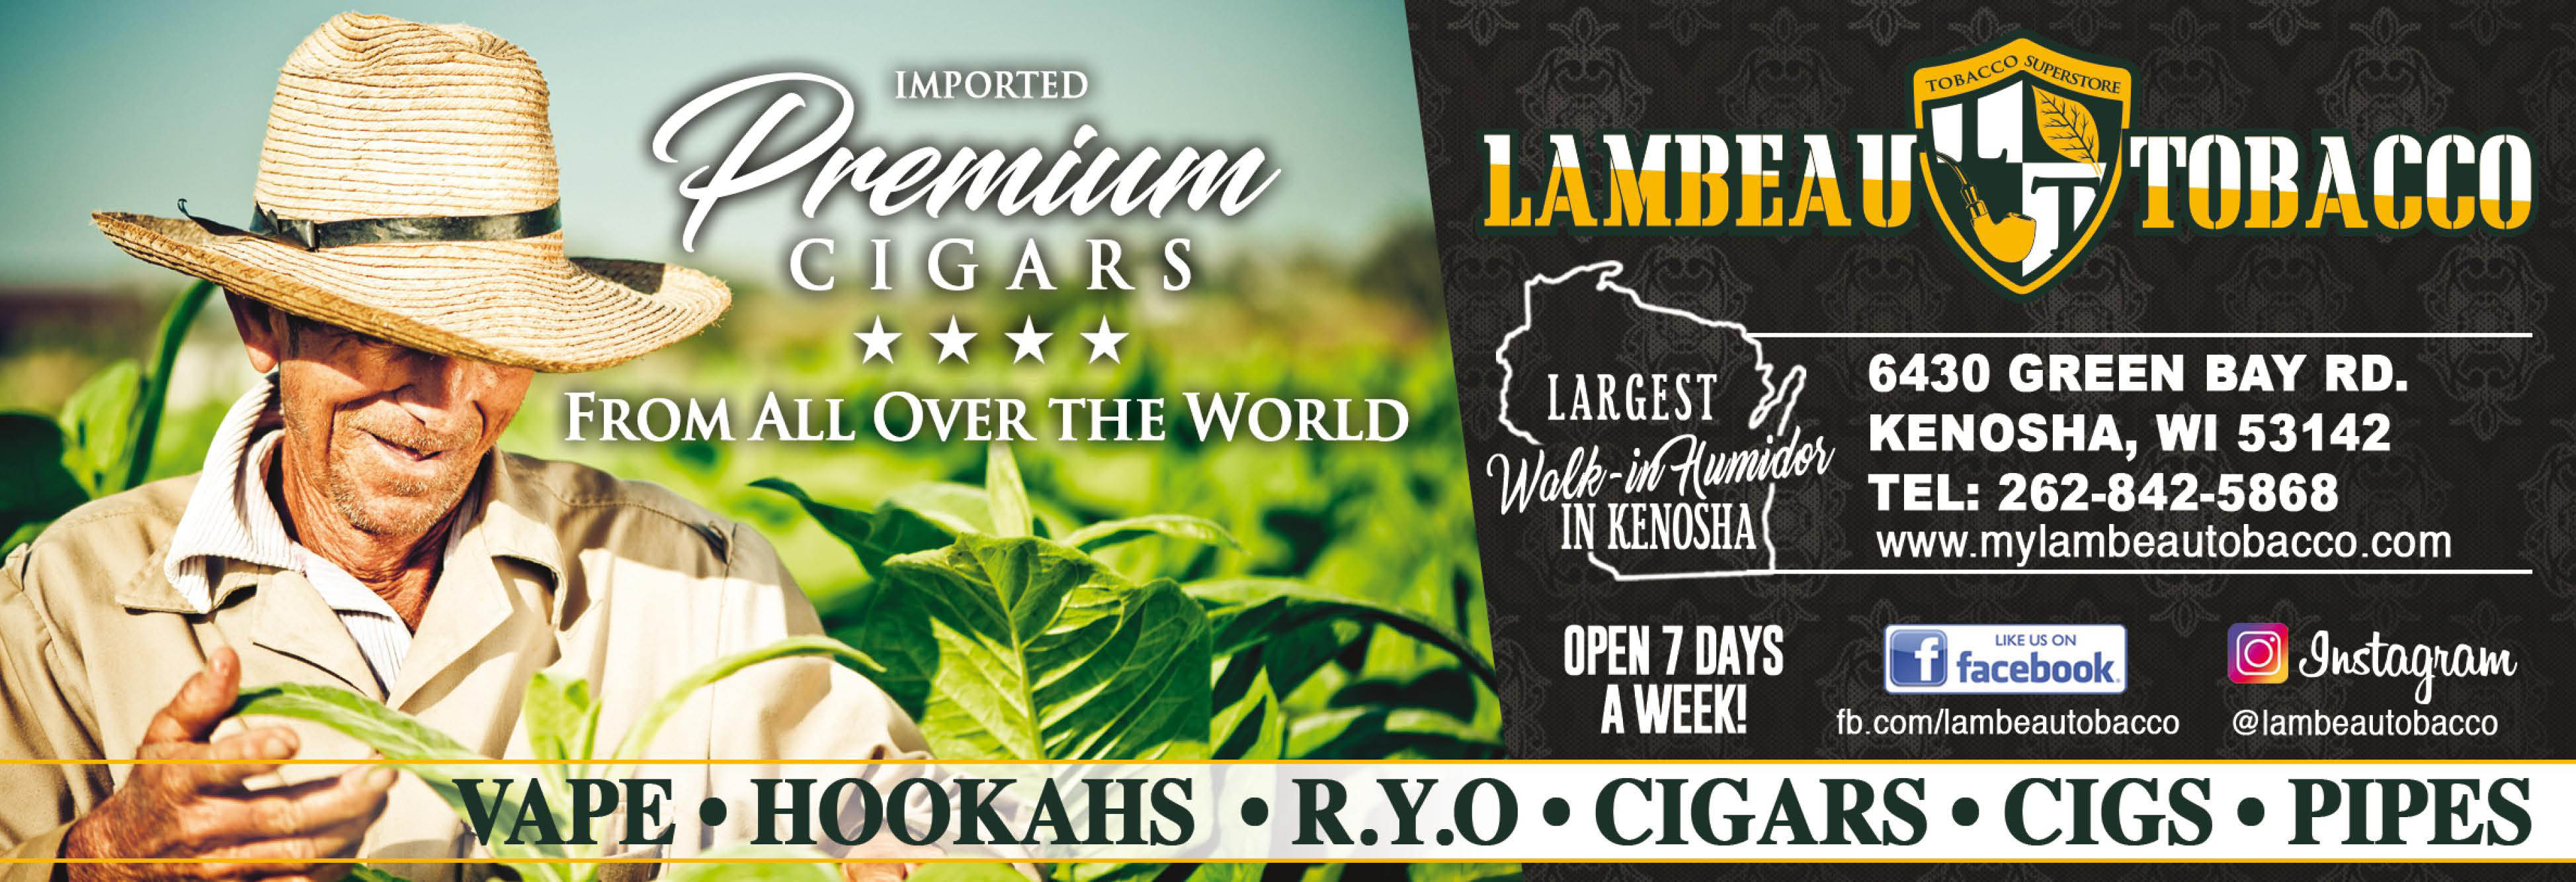 Lambeau Tobacco Cigars Pipes Tobacco in Kenosha Banner